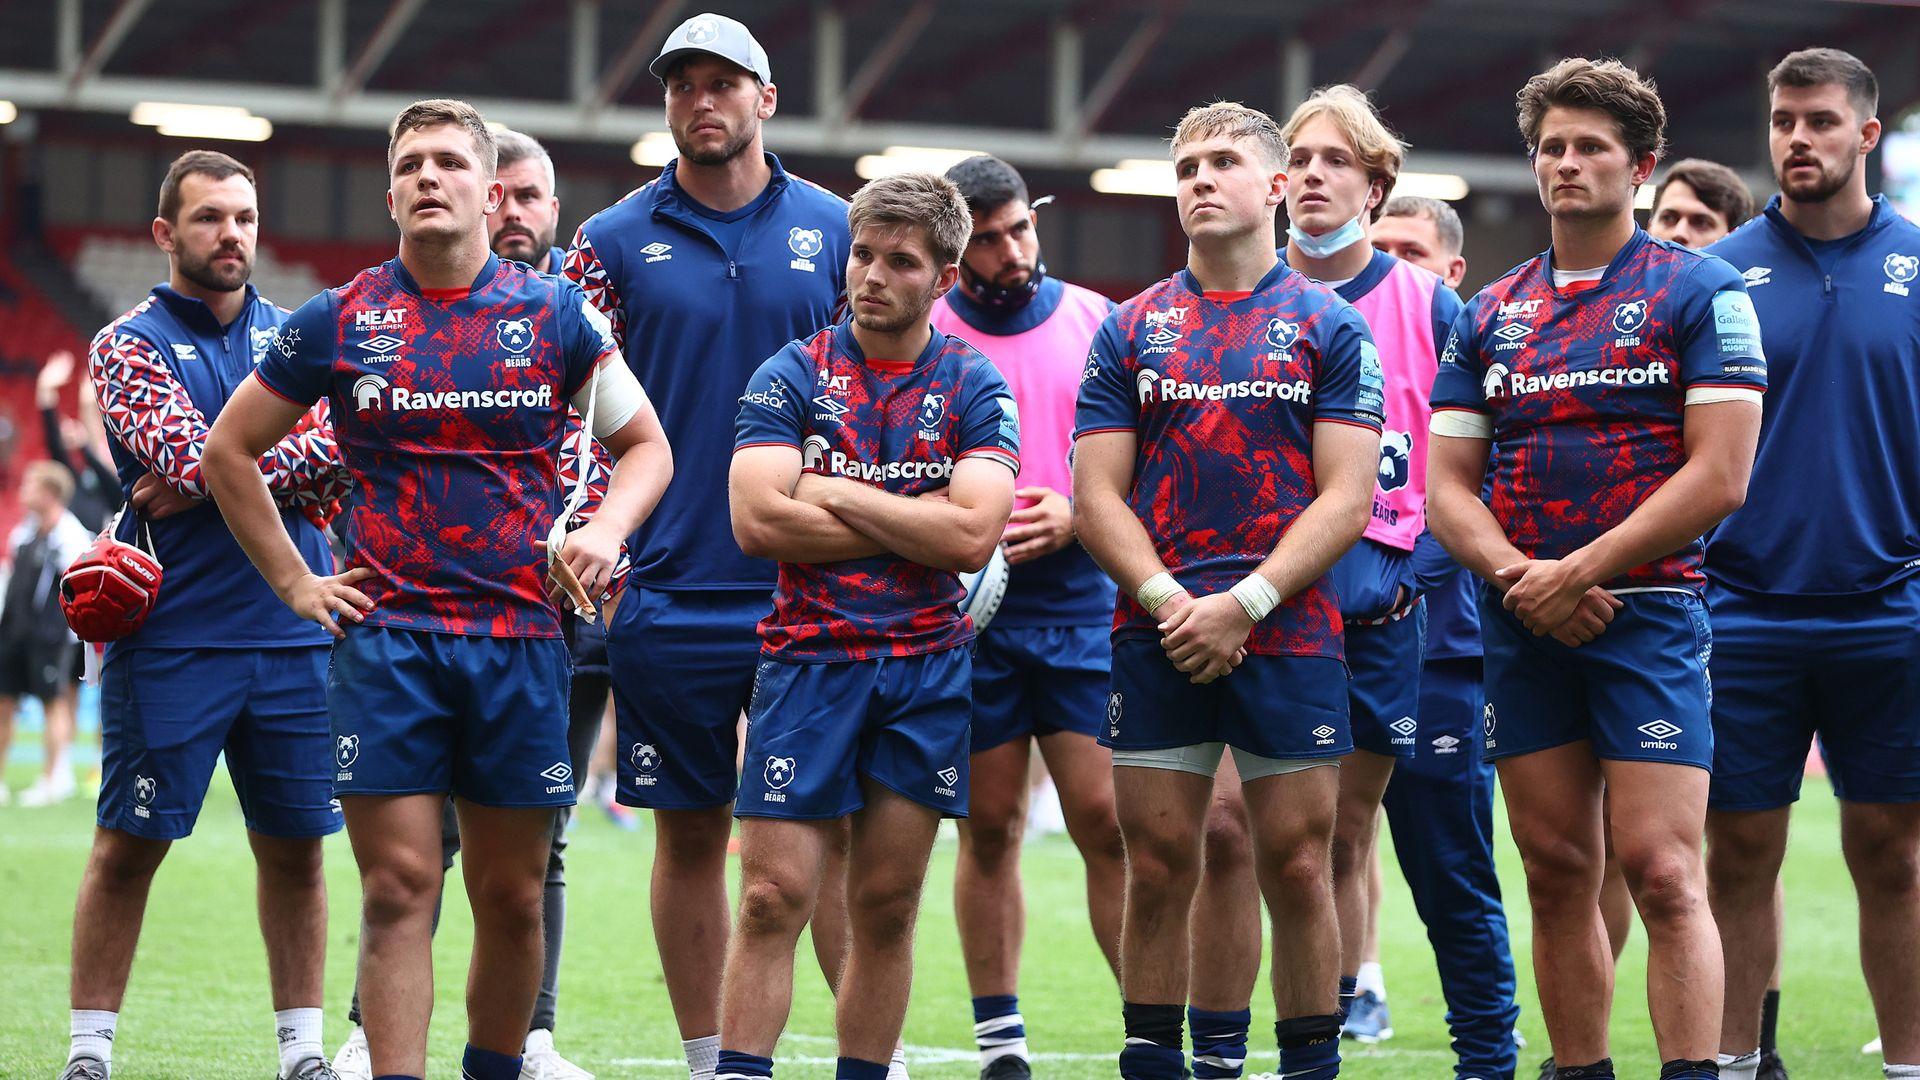 Lam disappointed with Bristol's implosion in semi-final